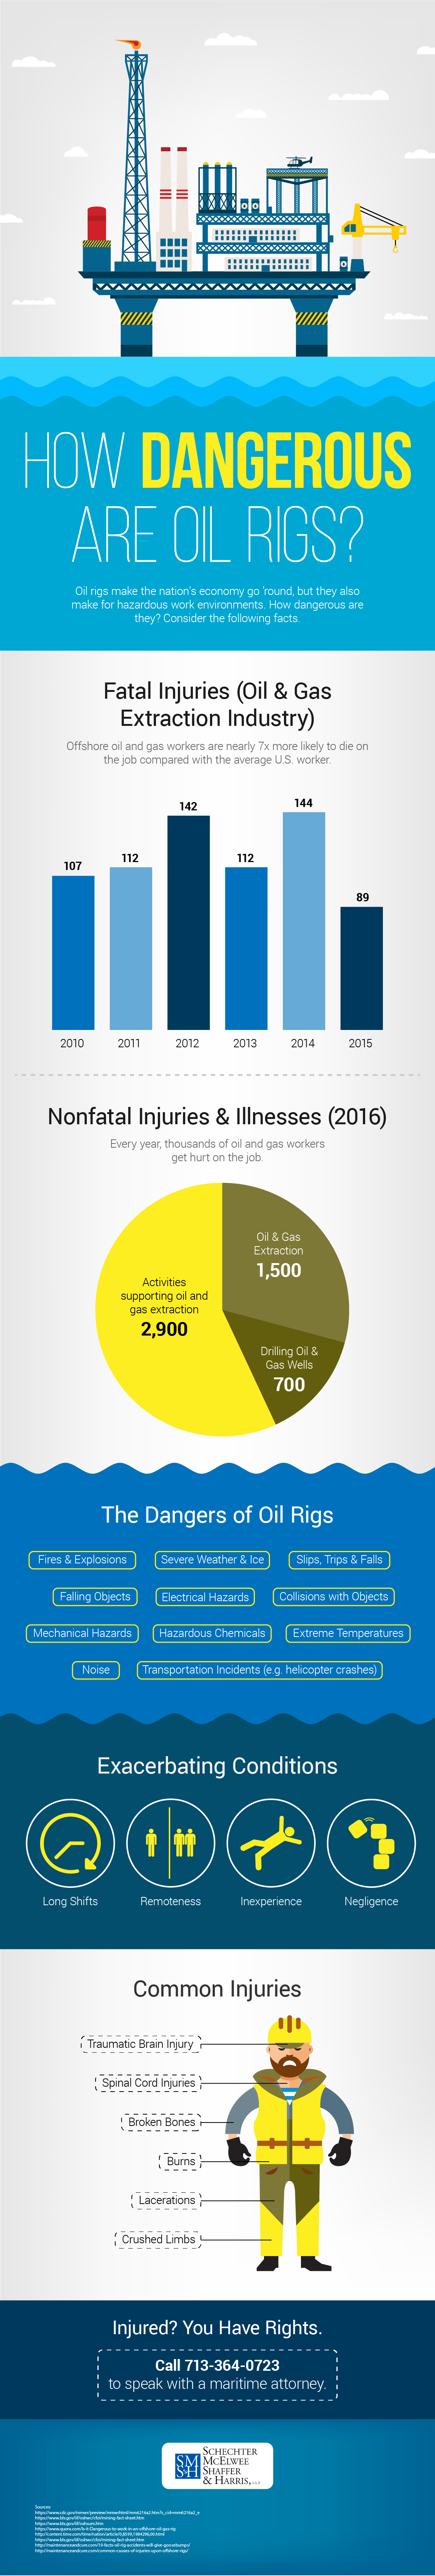 How Dangerous Are Oil Rigs Infographic